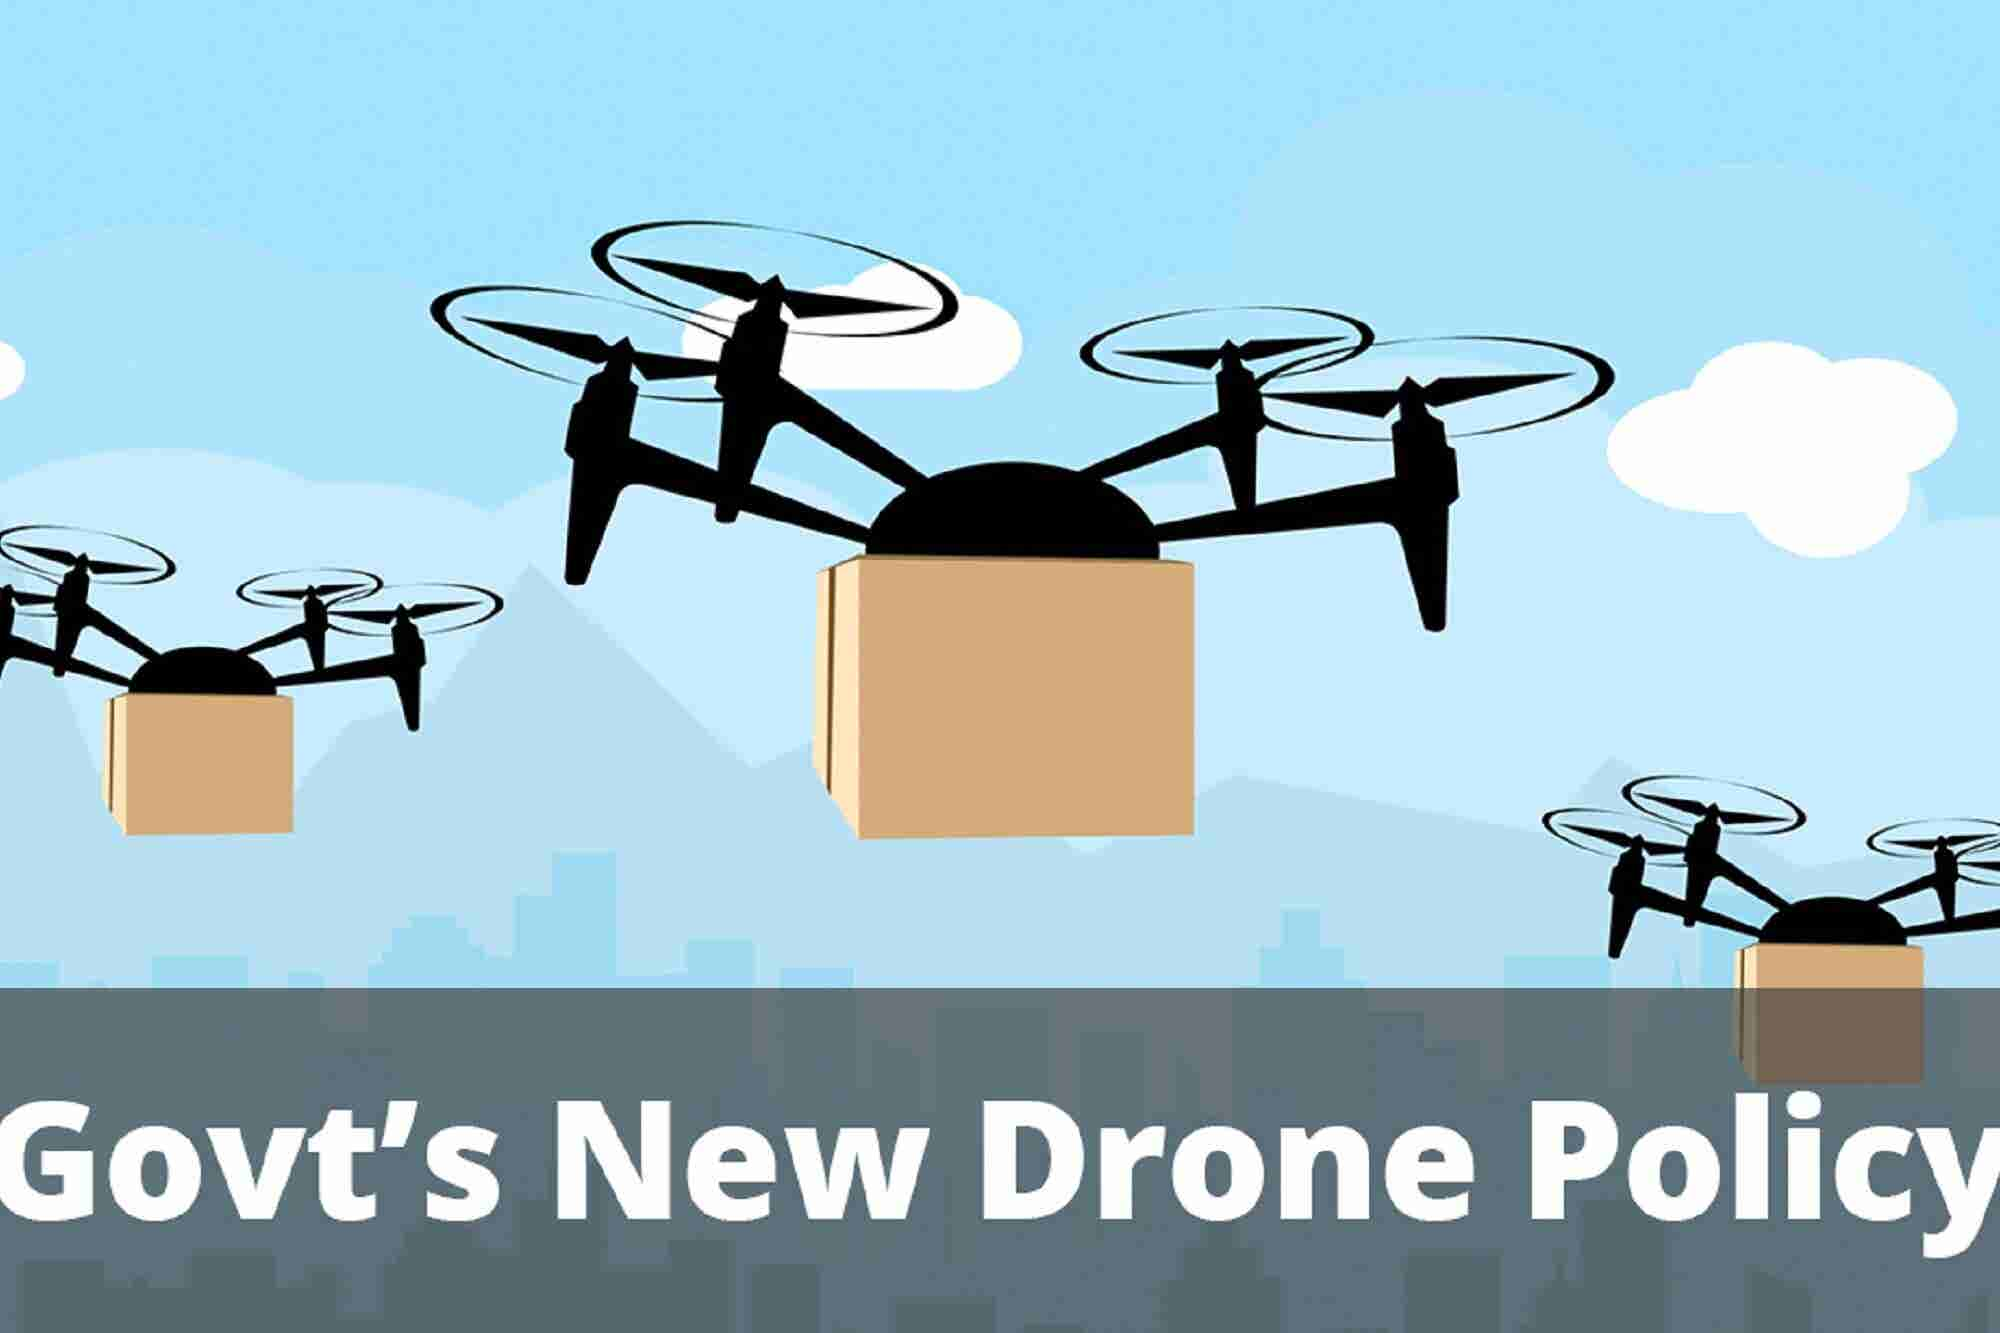 Indian Govt. Unveils New Drone Policy & Air Pollution Can Make You Less Intelligent: 4 Things to Know Today